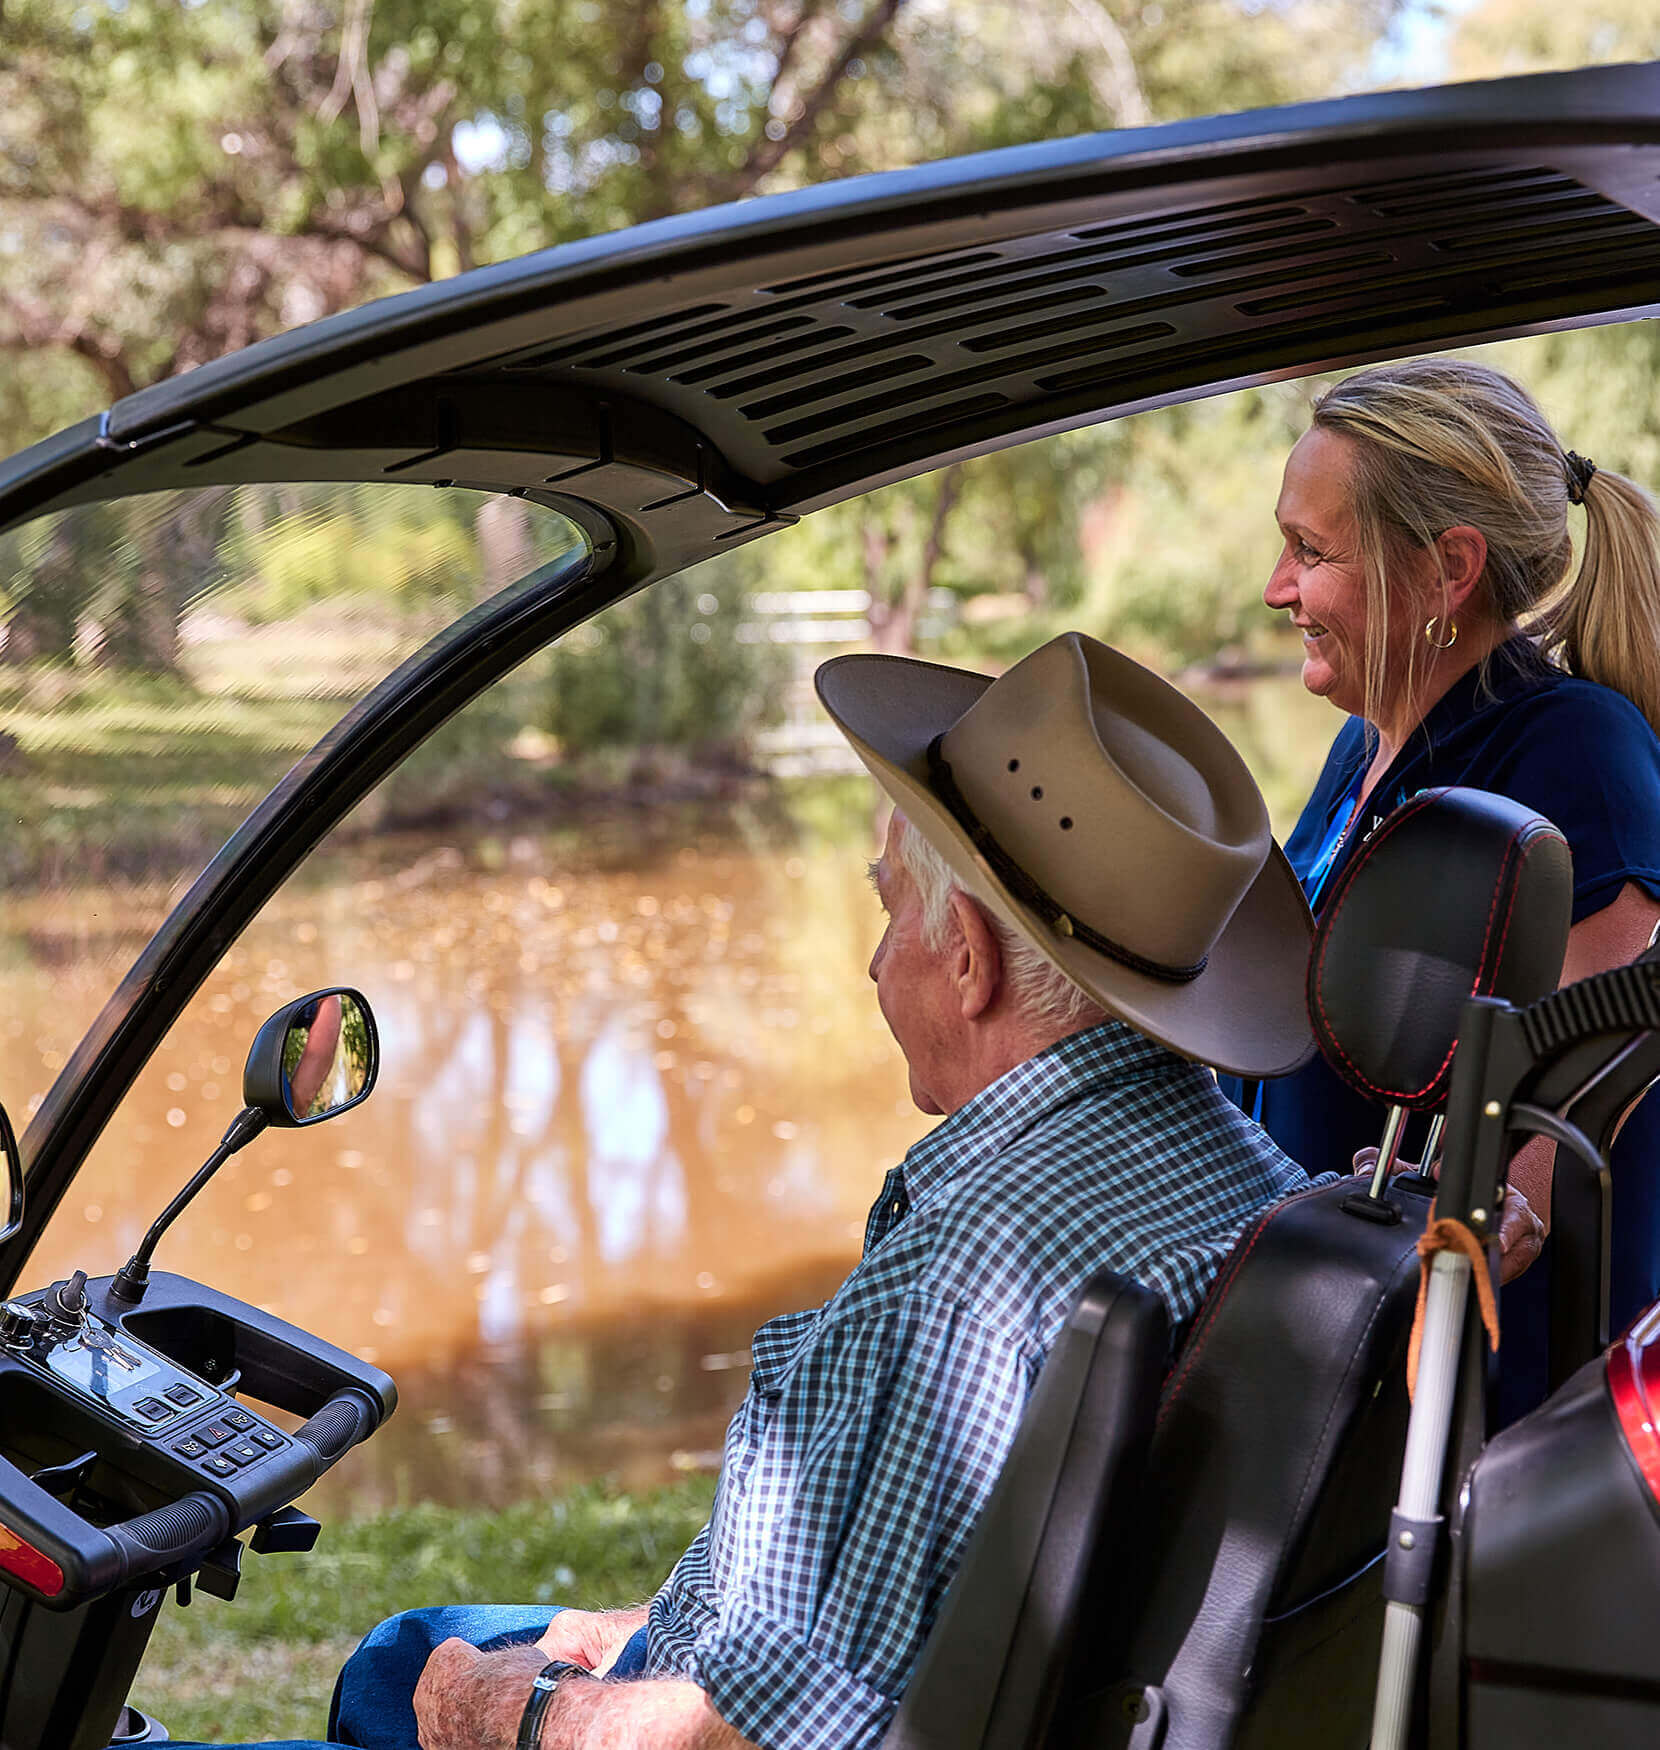 A man in a akubra hat and chequered shirt sitting in the cabin of a buggy gazing out at a muddy river. A woman is standing next to him outside the buggy smiling. She had a blonde hair in a ponytail.